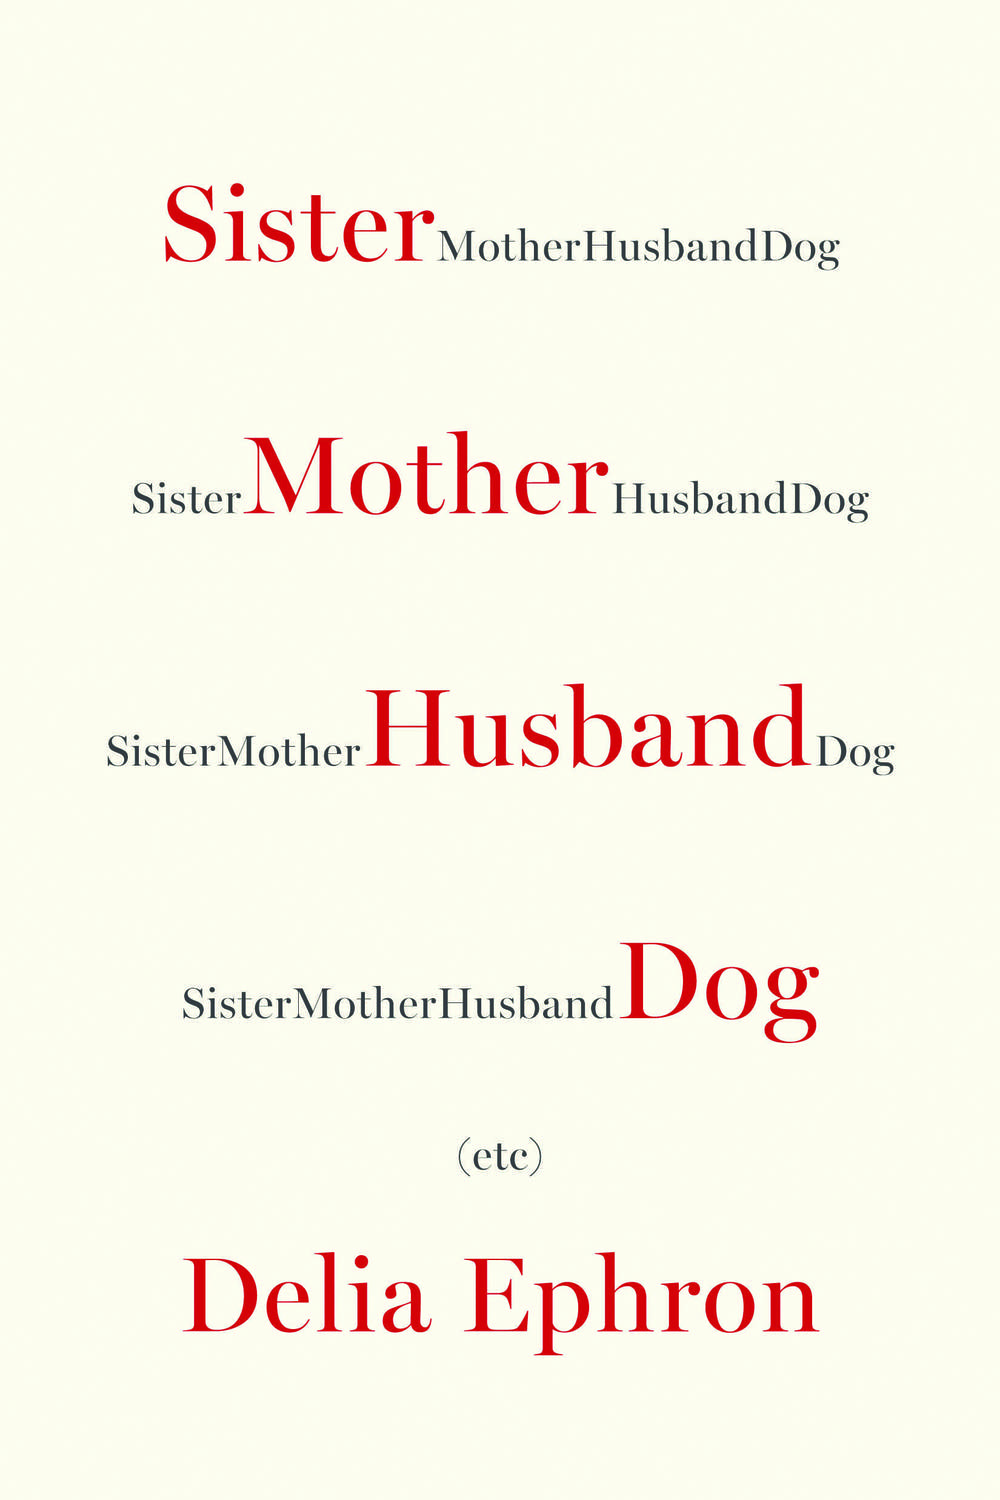 'Sister Mother Husband Dog' by Delia Ephron